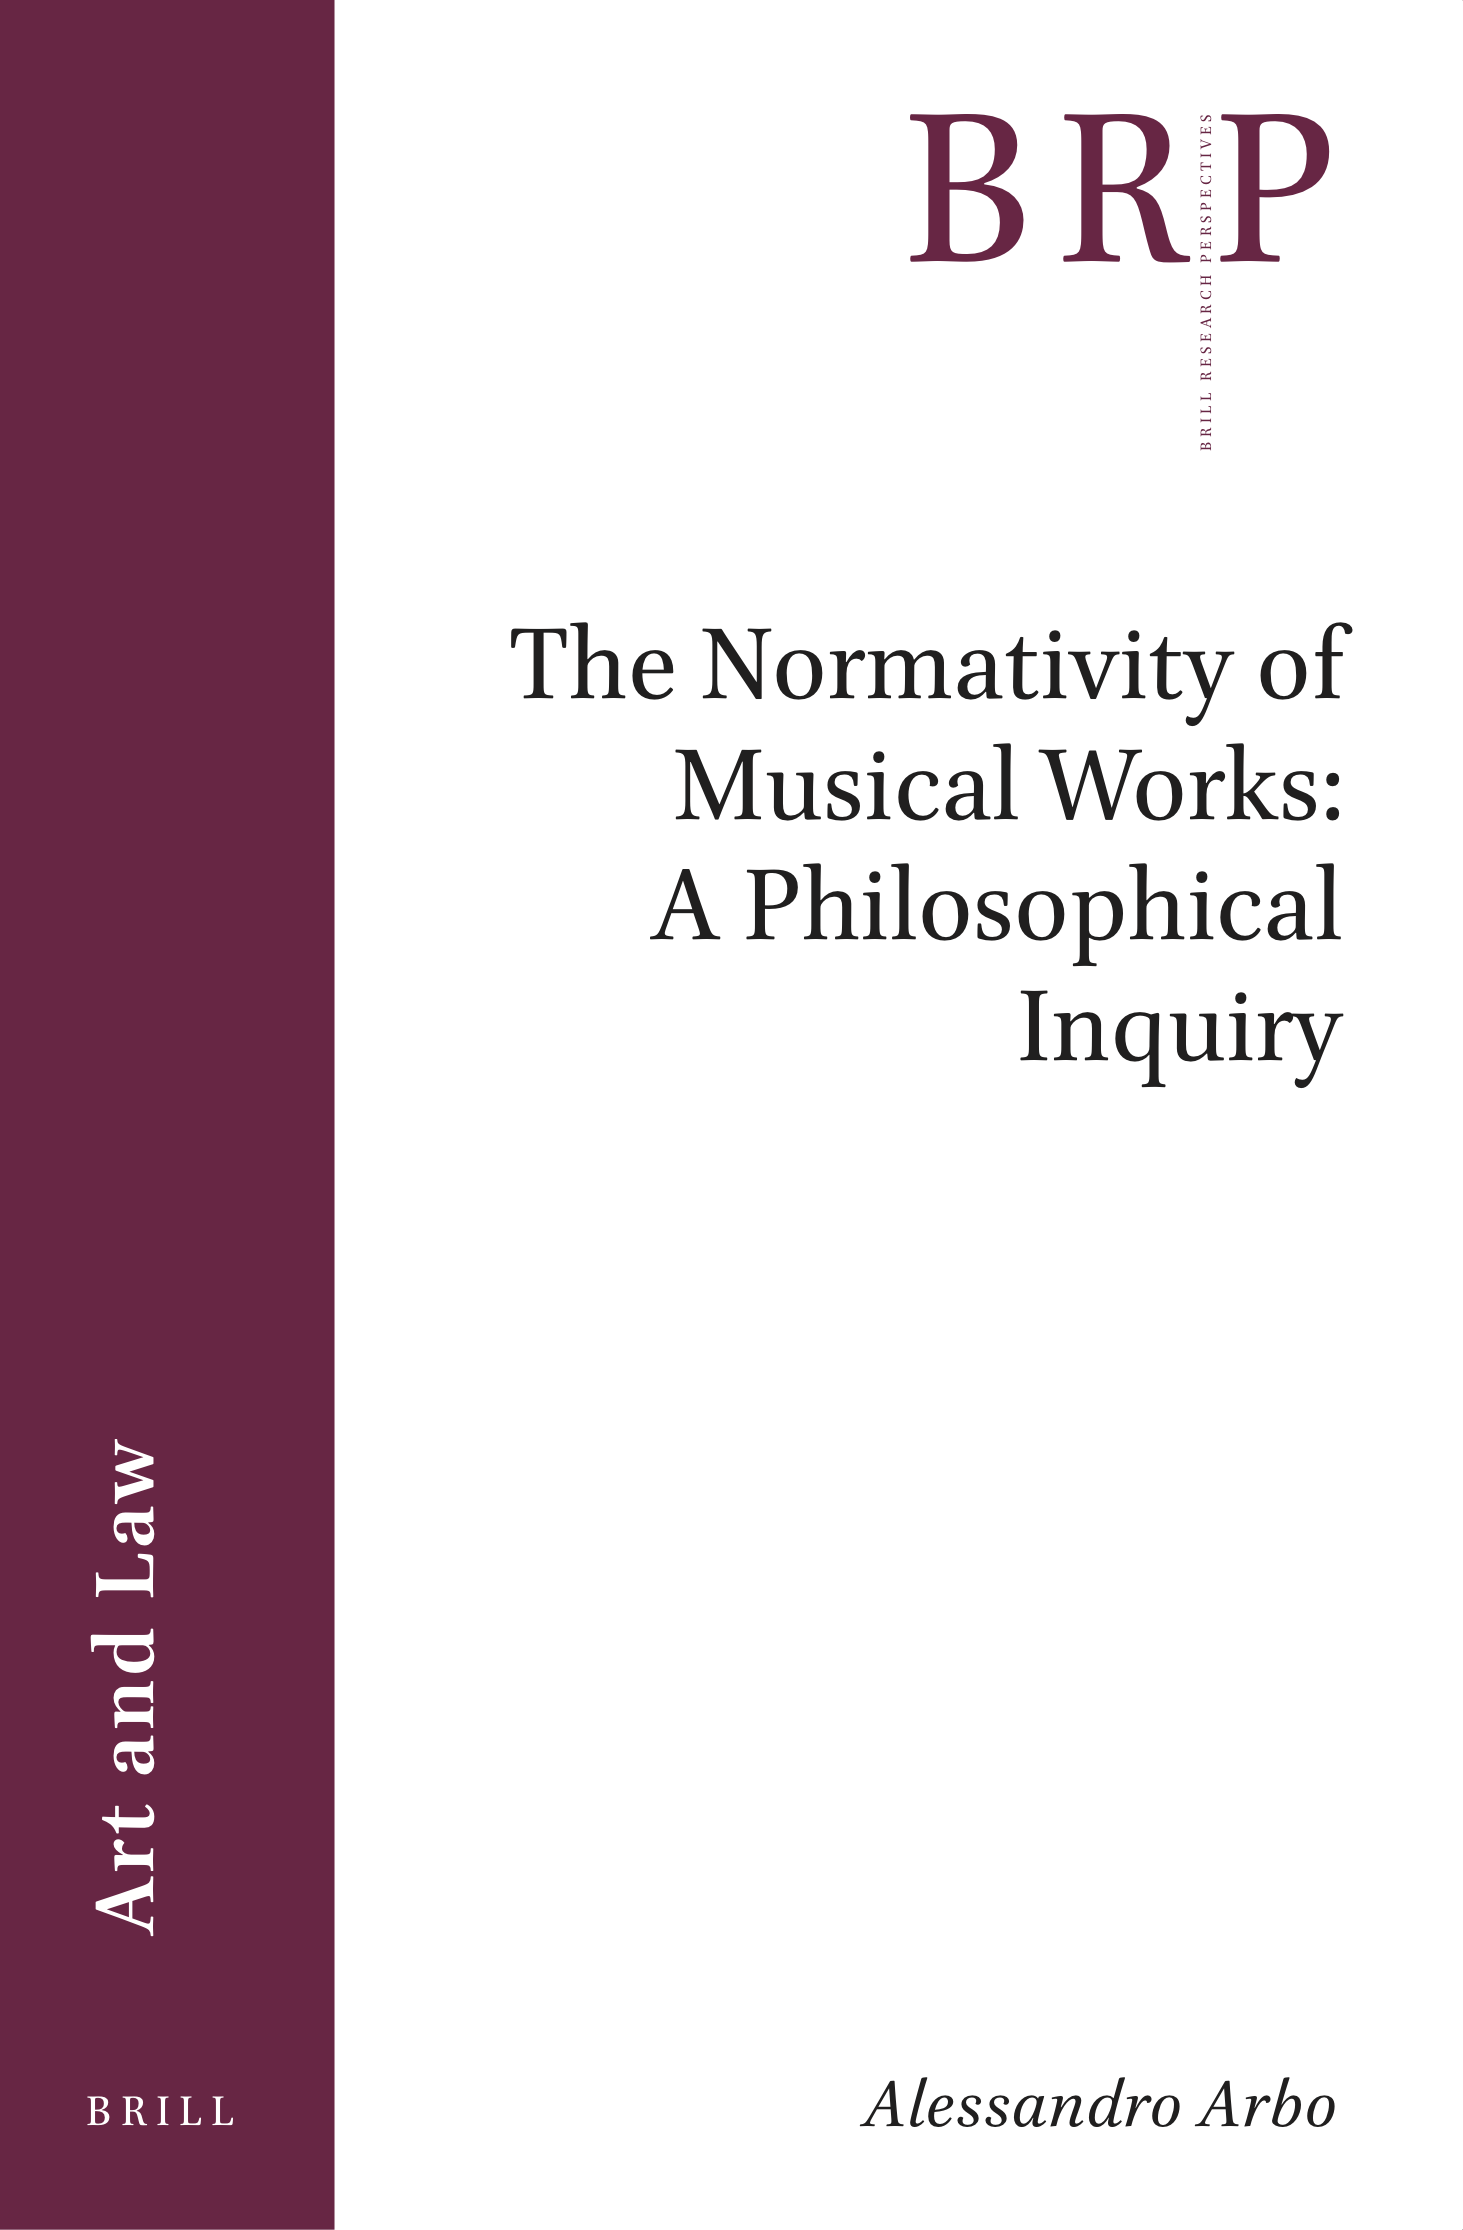 The Normativity of Musical Works - Alessandro Arbo